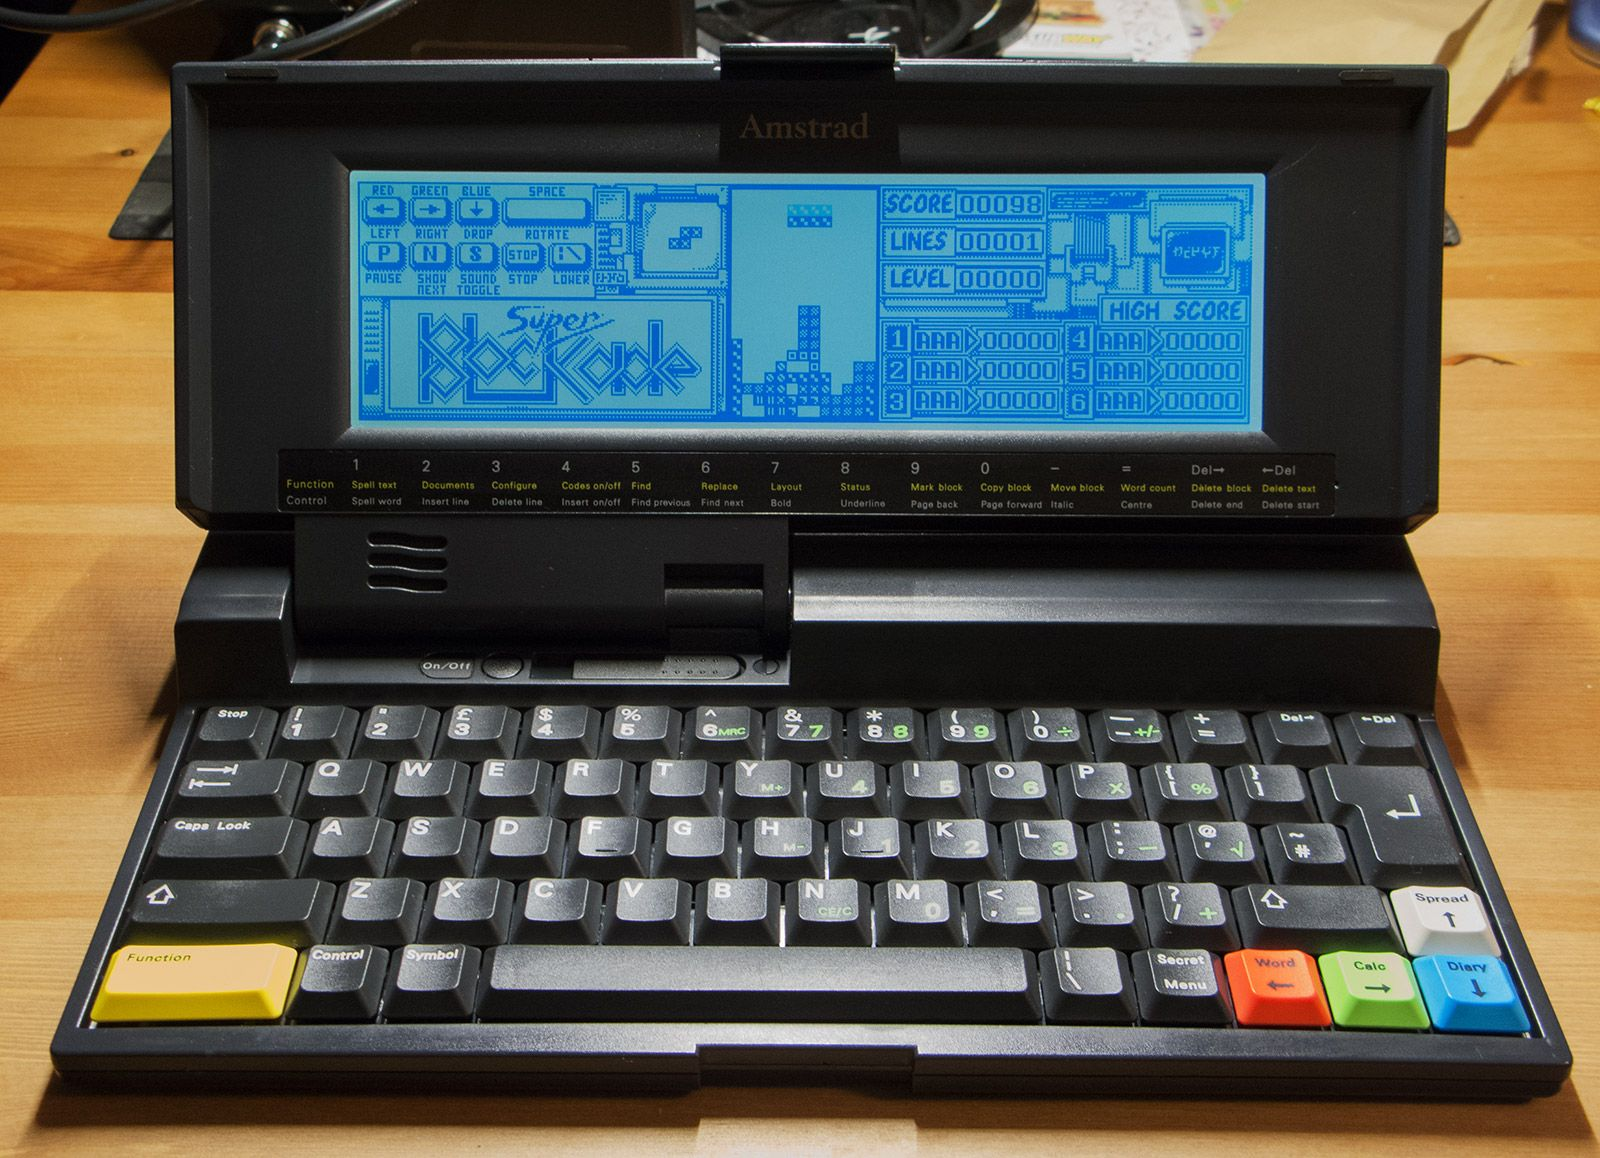 tetris being played on Amstrad Notepad NC200